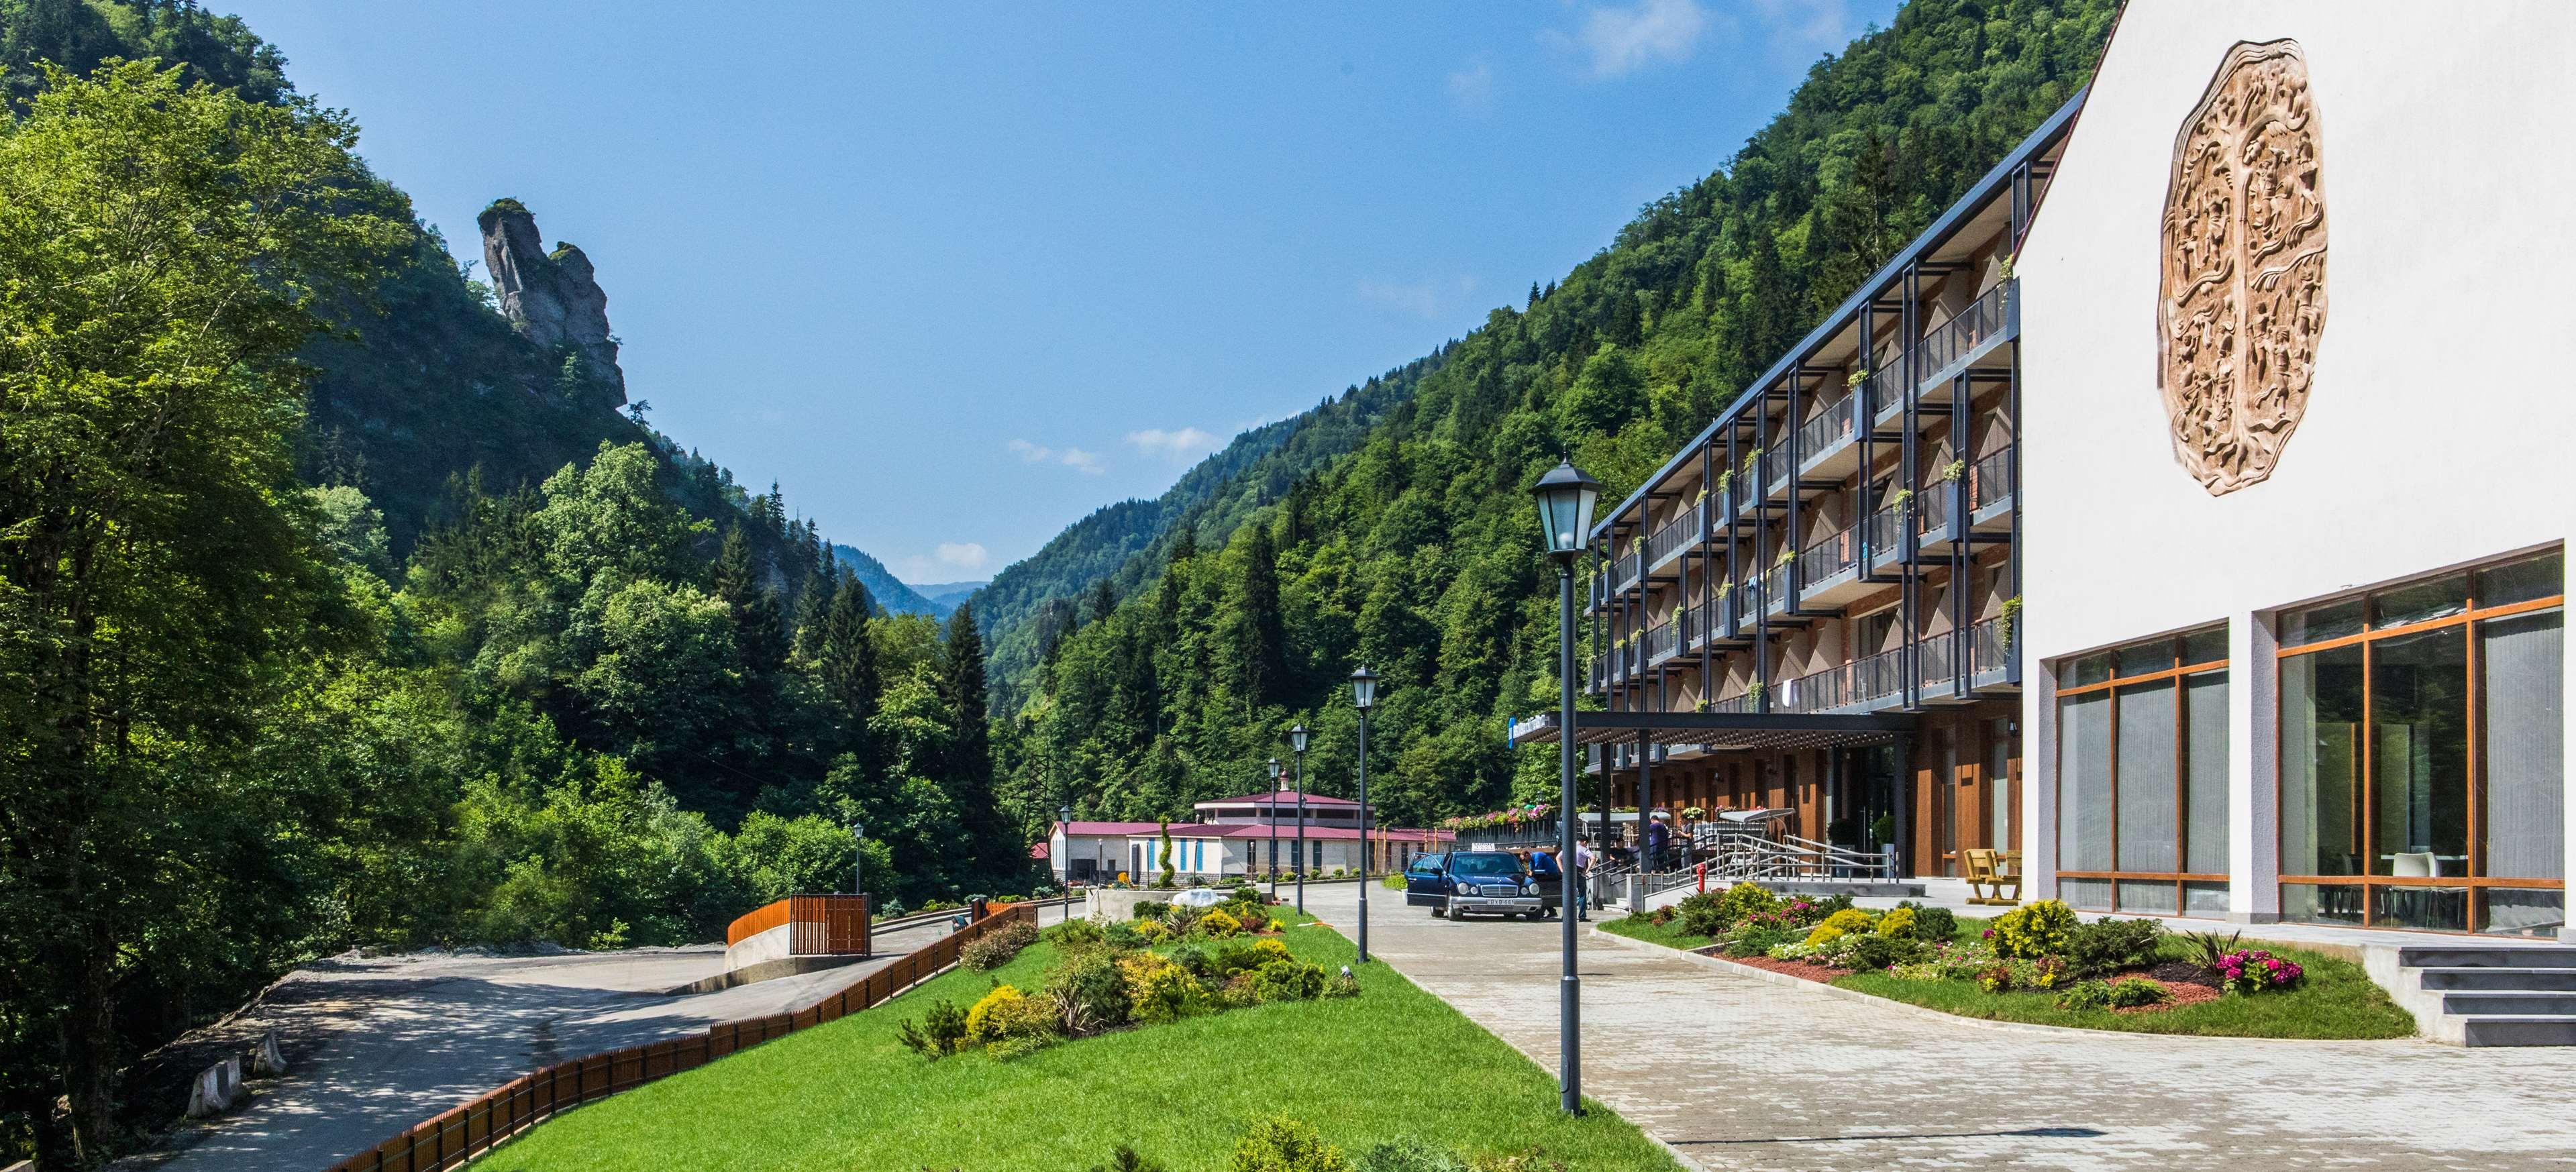 Best Western Sairme Resort, Bagdati